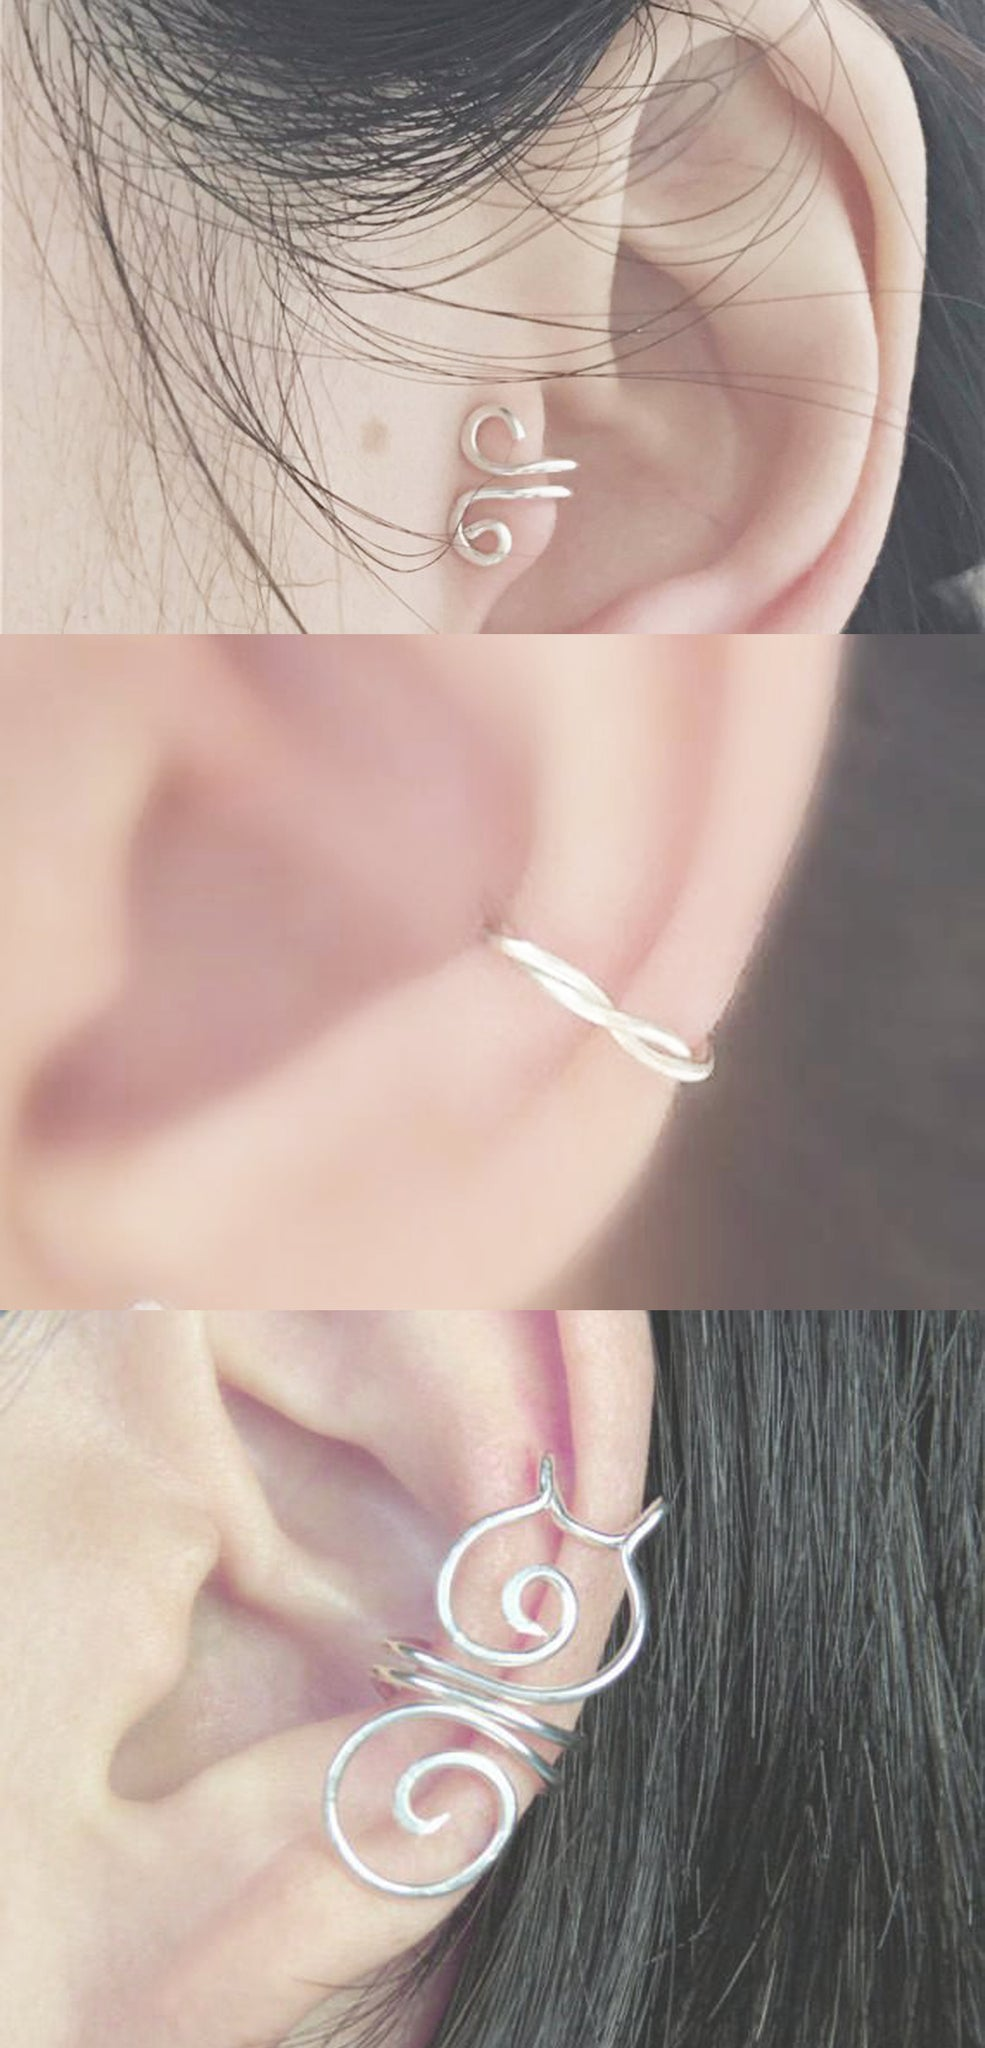 Minimal Simple Single Ear Piercing Ideas at MyBodiArt.com - Wire Wrapped Sterling Silver Earring Cuffs - Tragus Cartilage Conch Helix